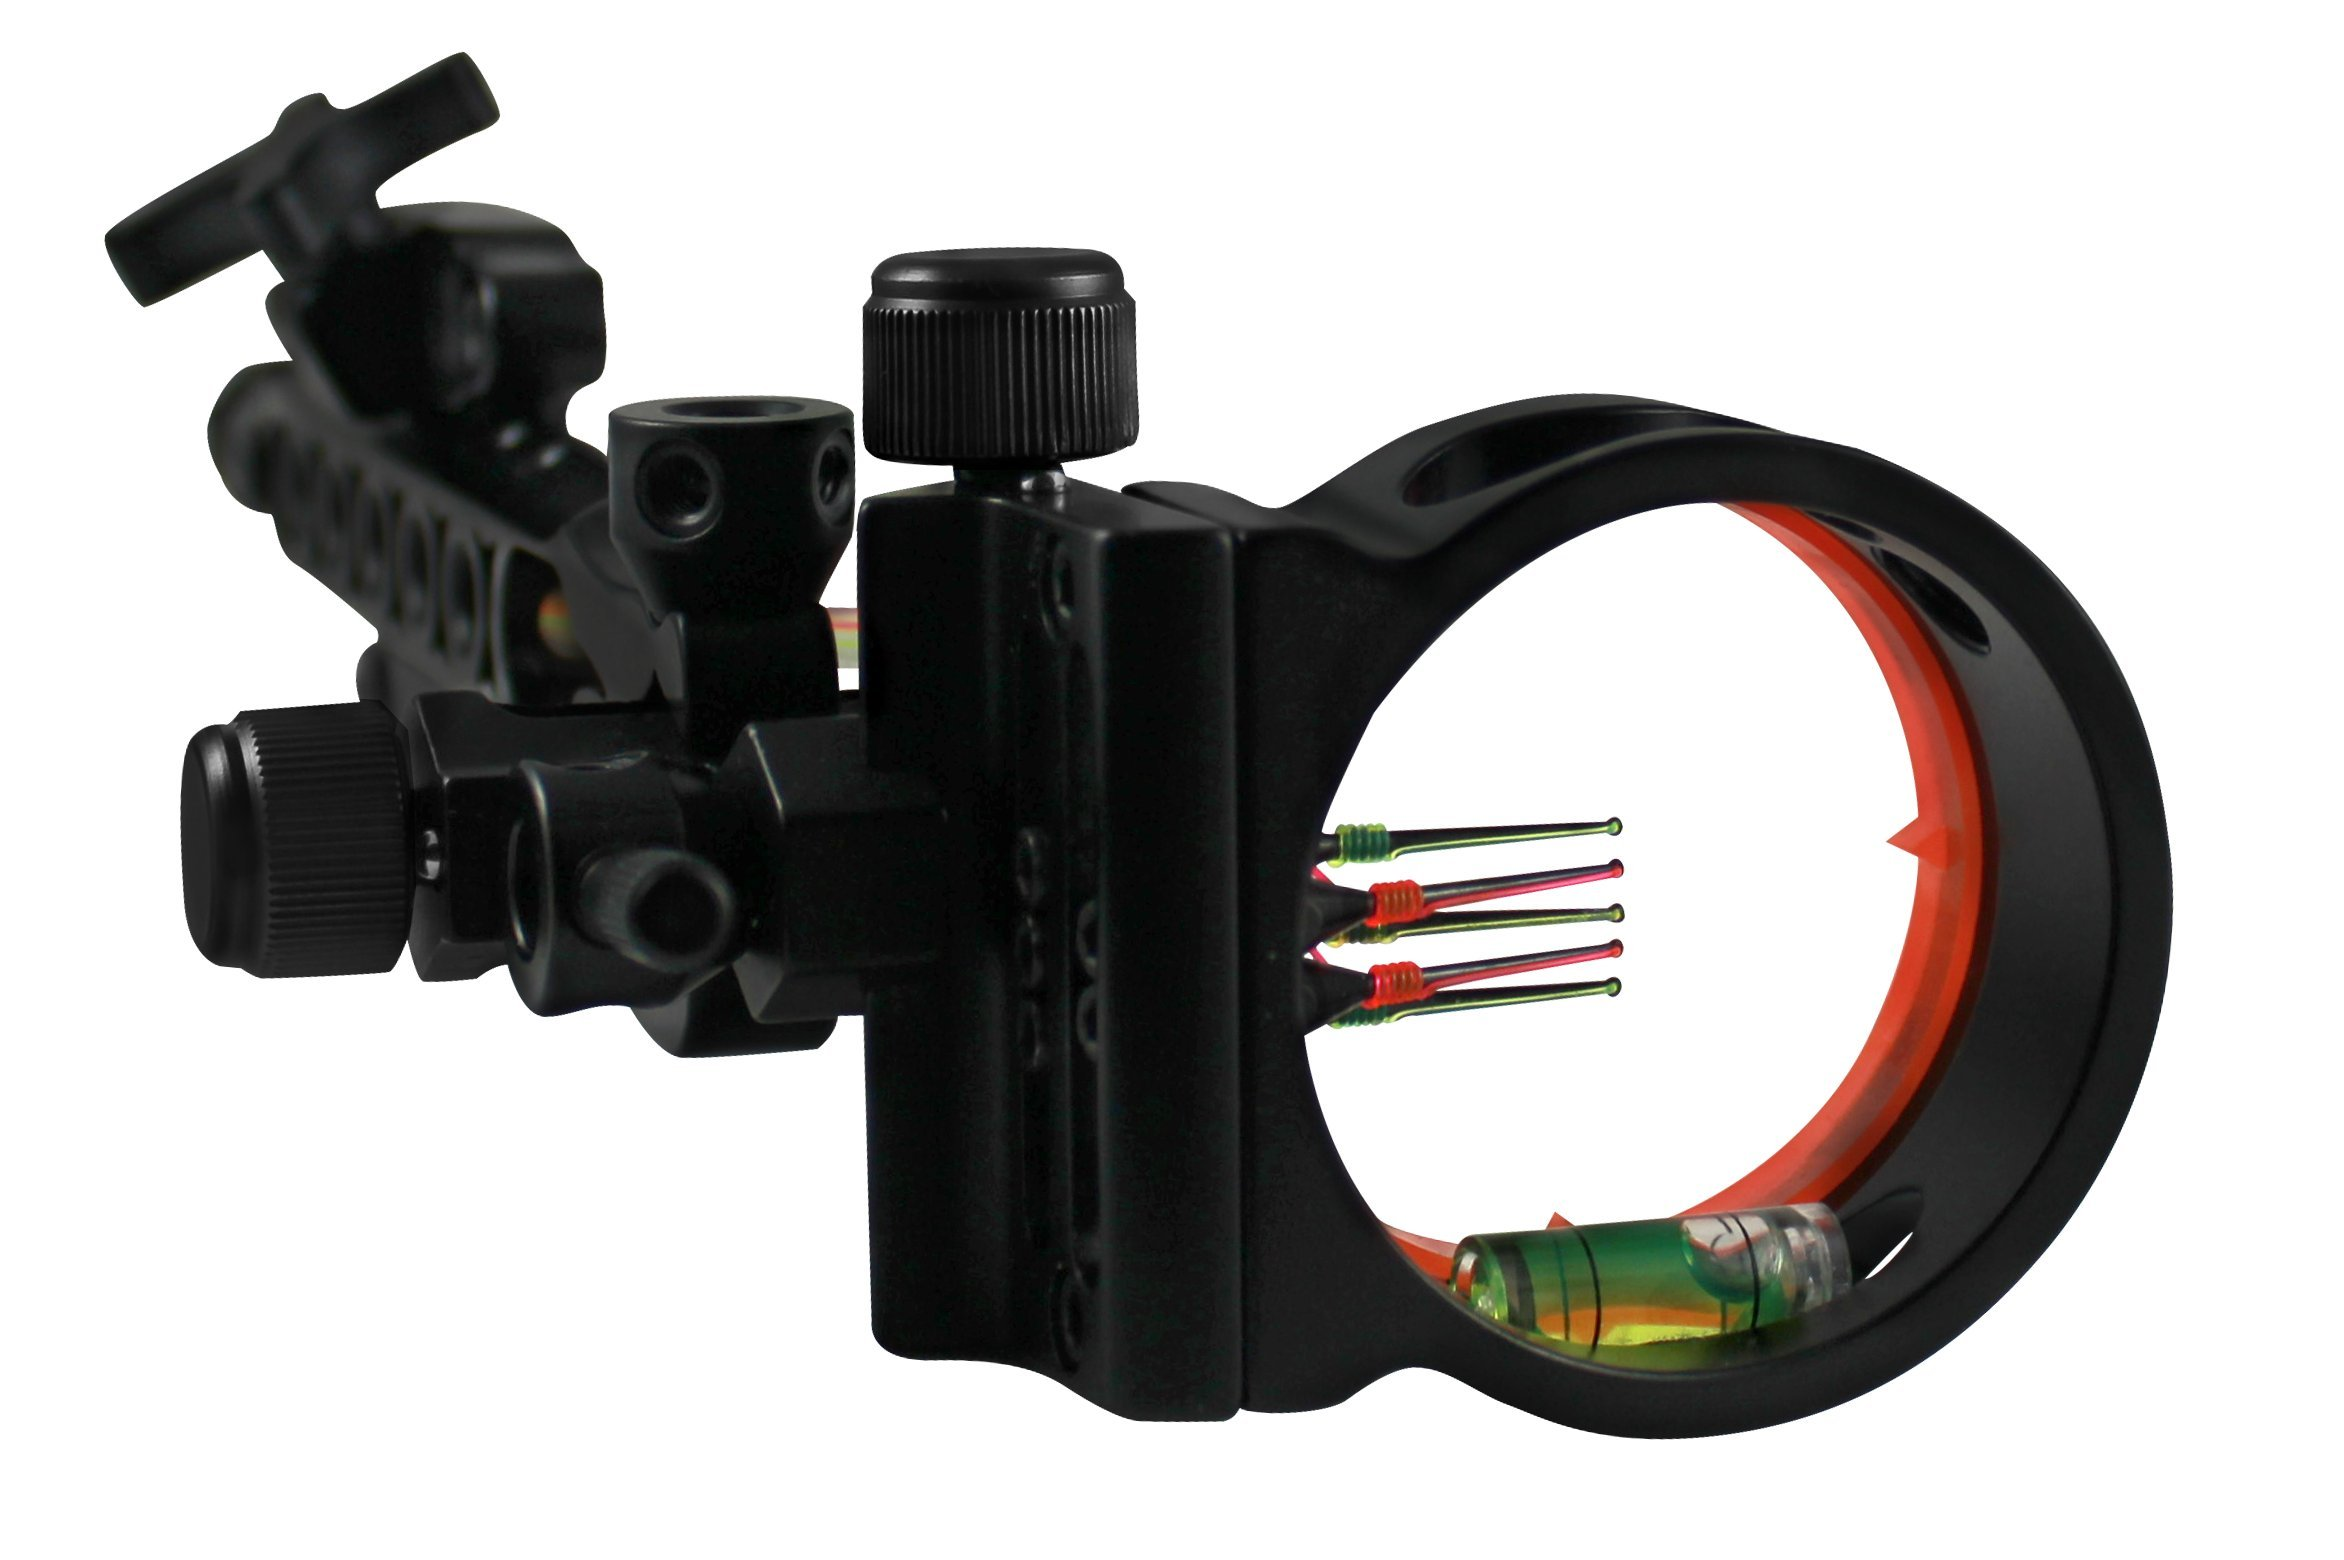 The Tack Driver DT Dead Ringer Bow Sight